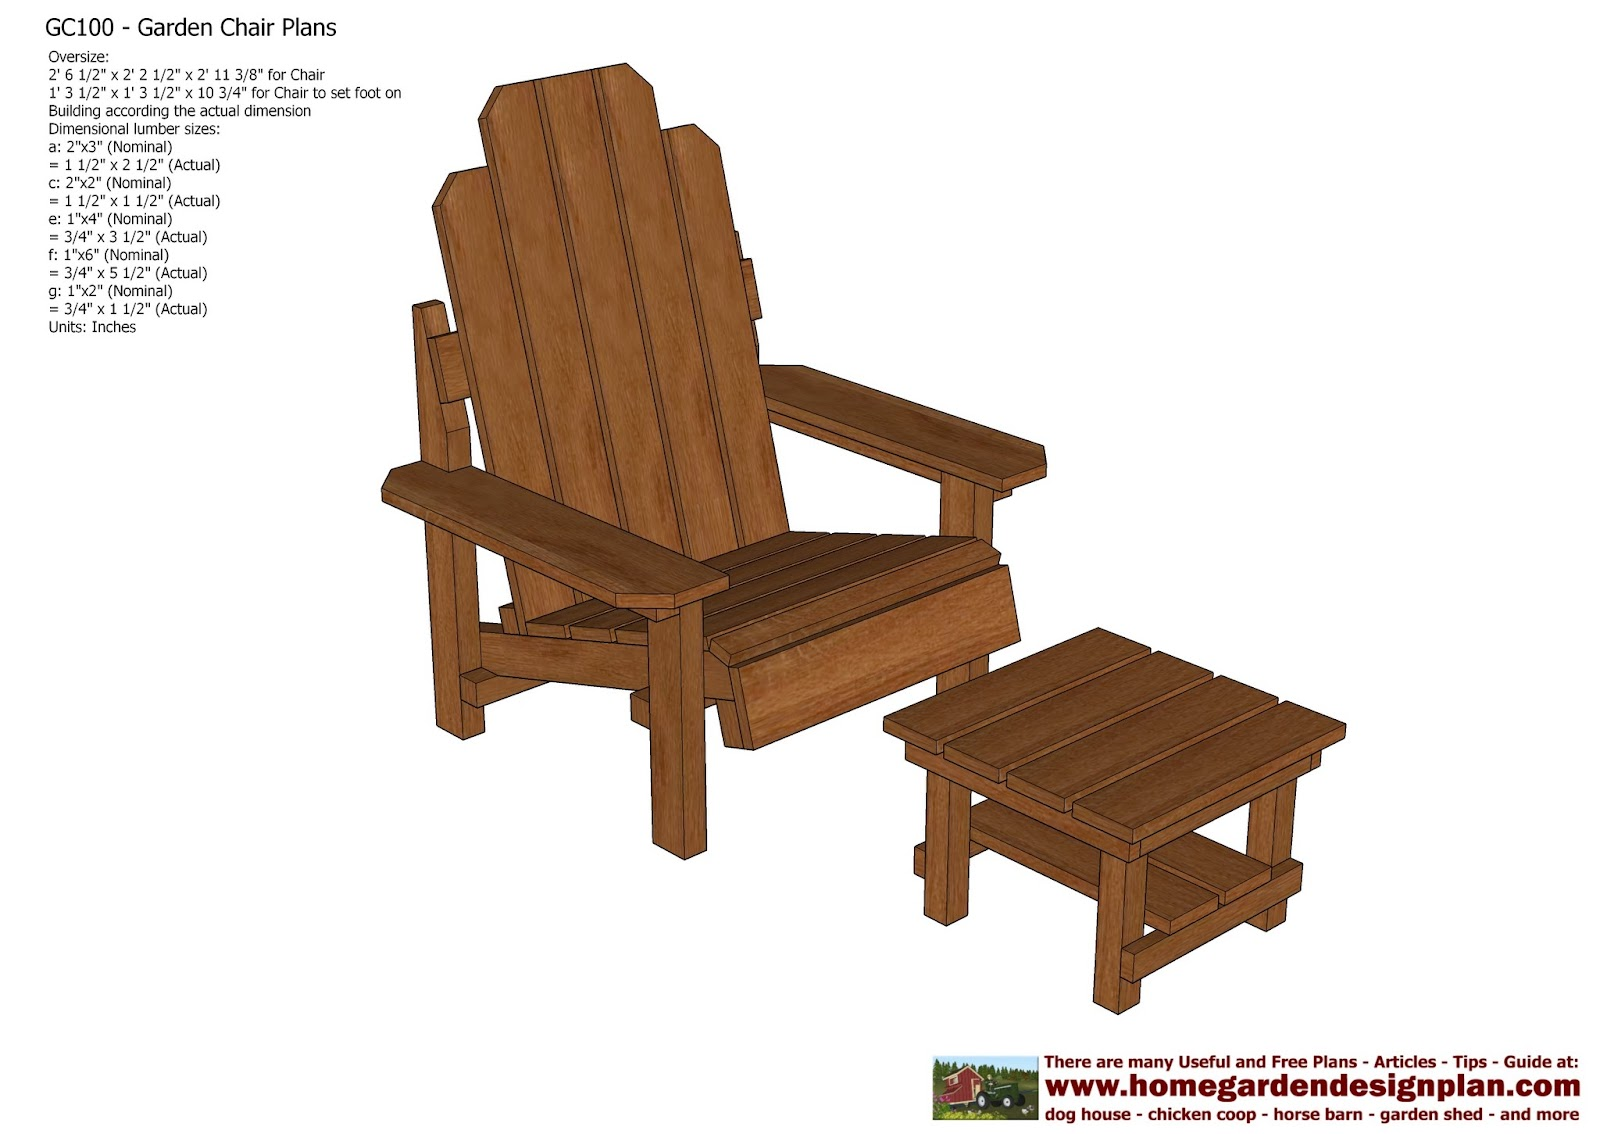 chair design garden wingback leather outdoor wood furniture plans ideas